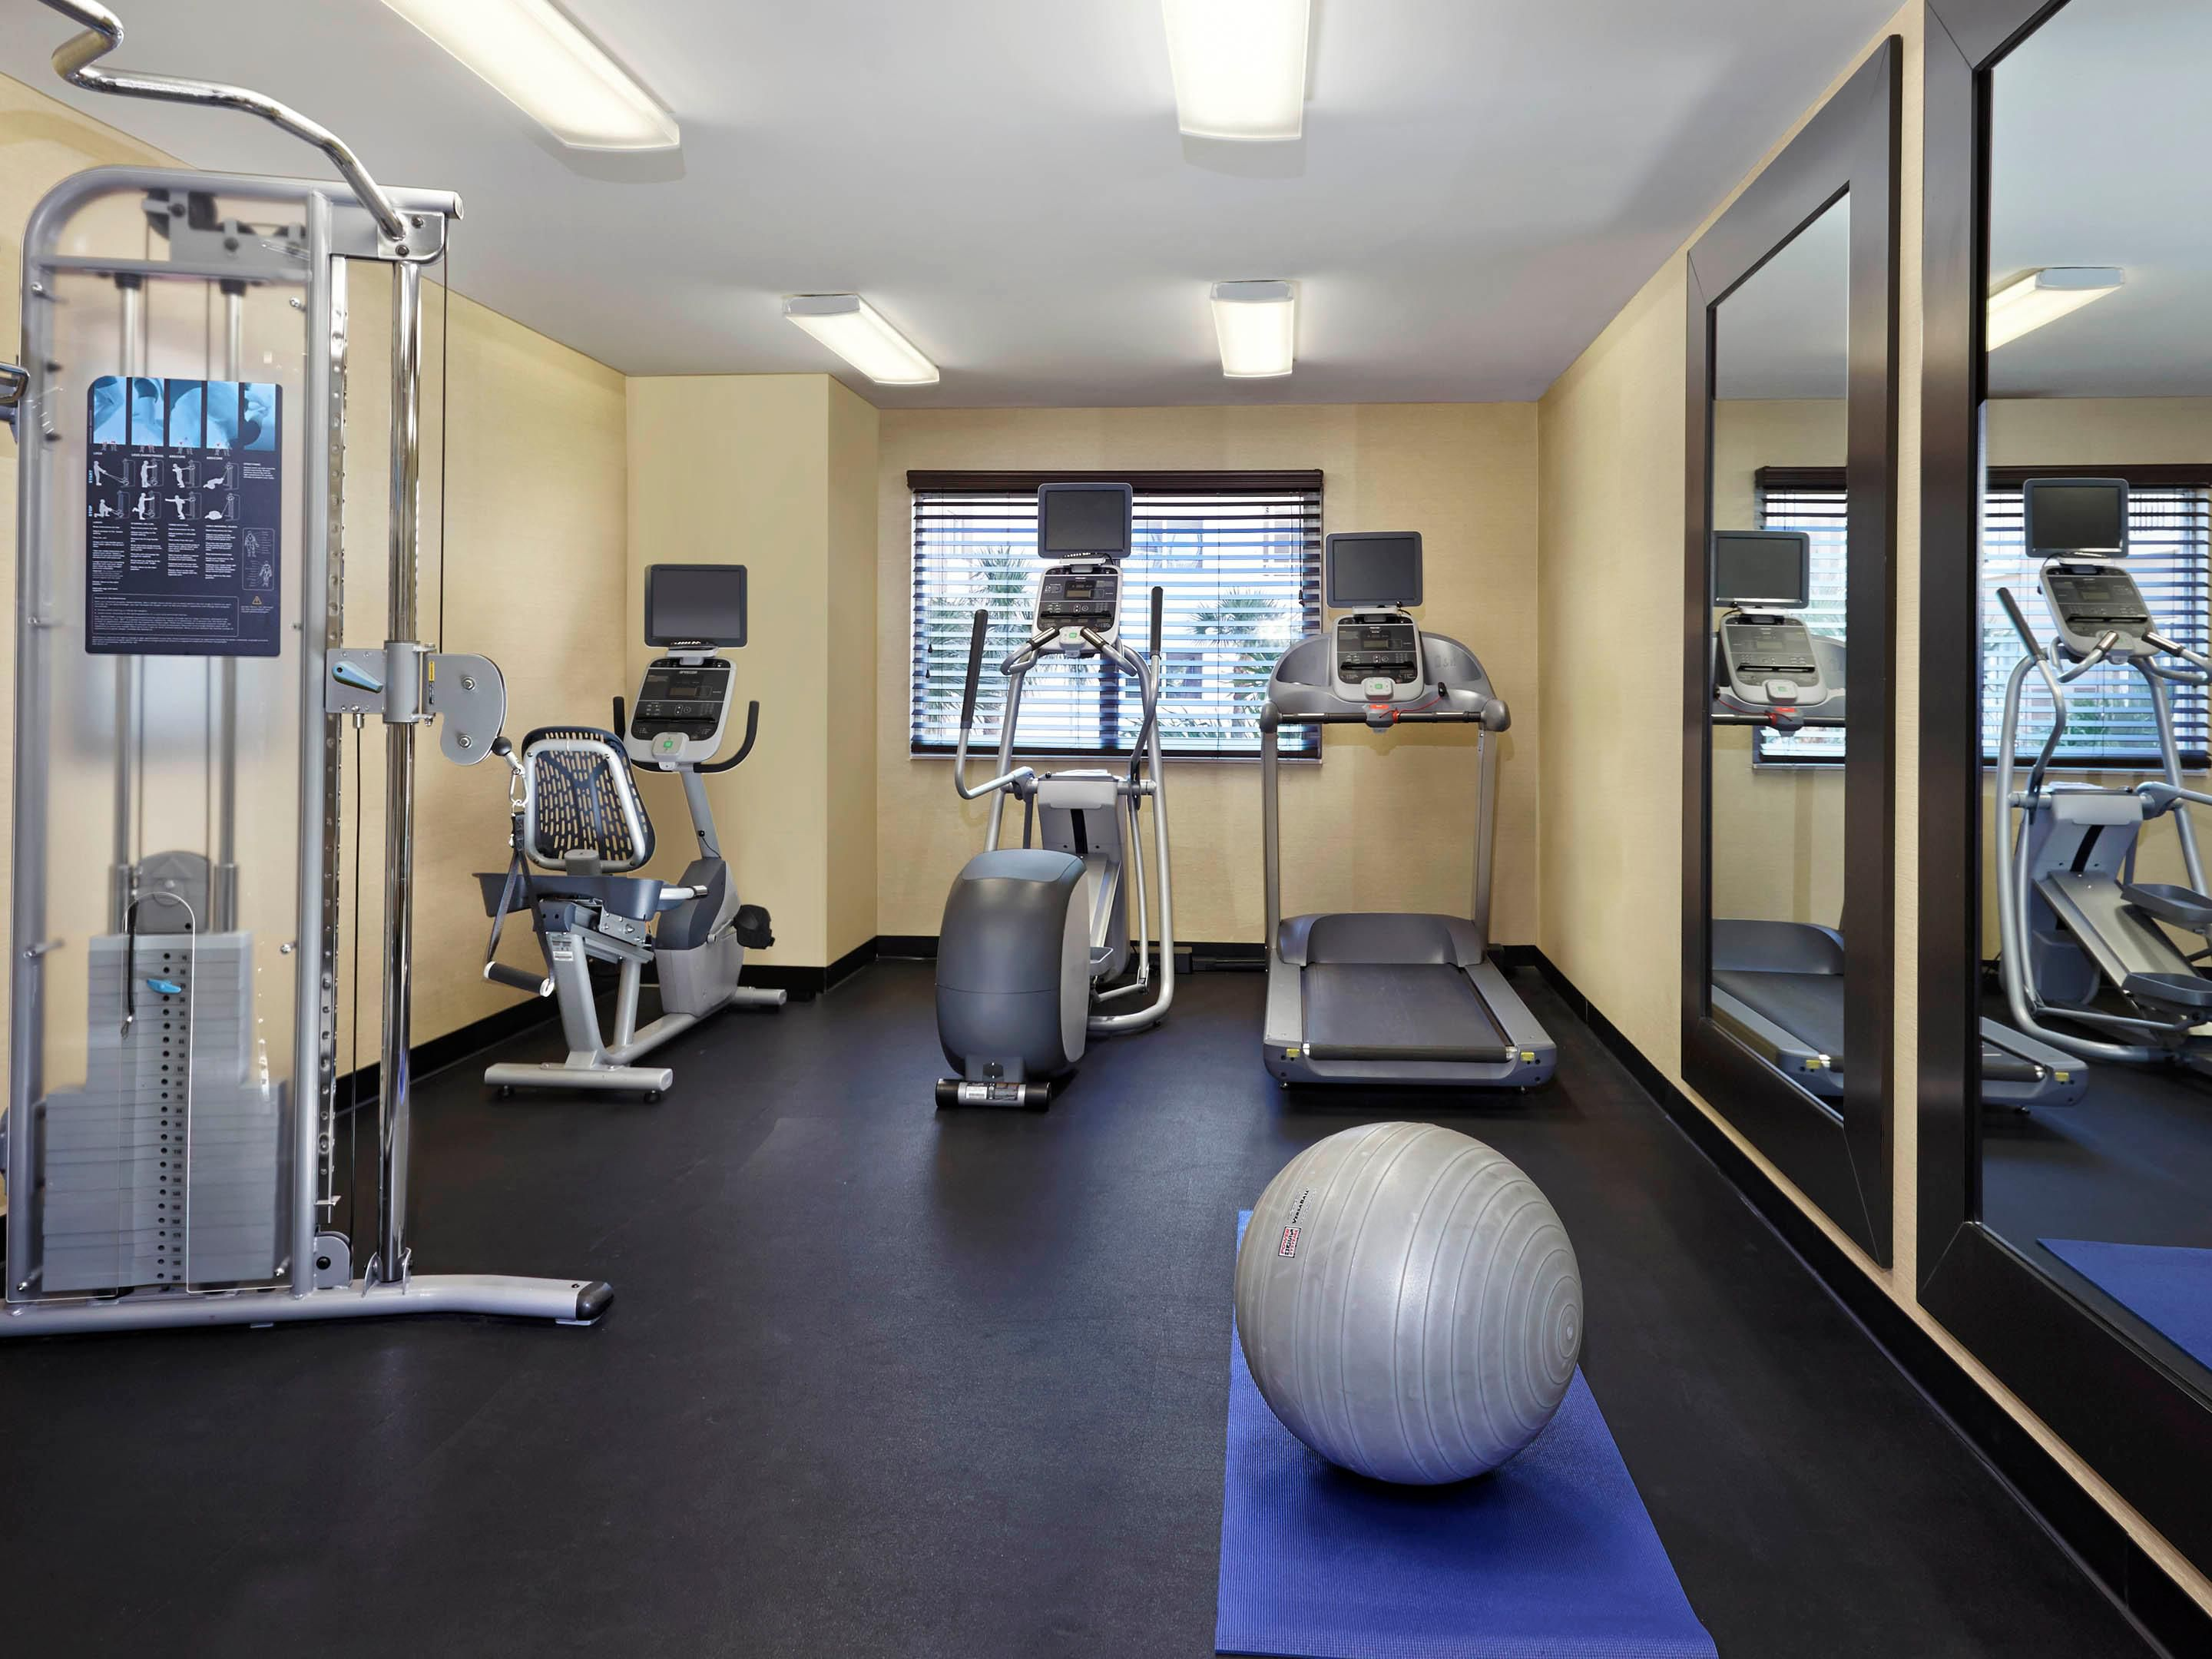 Enjoy a variety of equipment in our Fitness Center